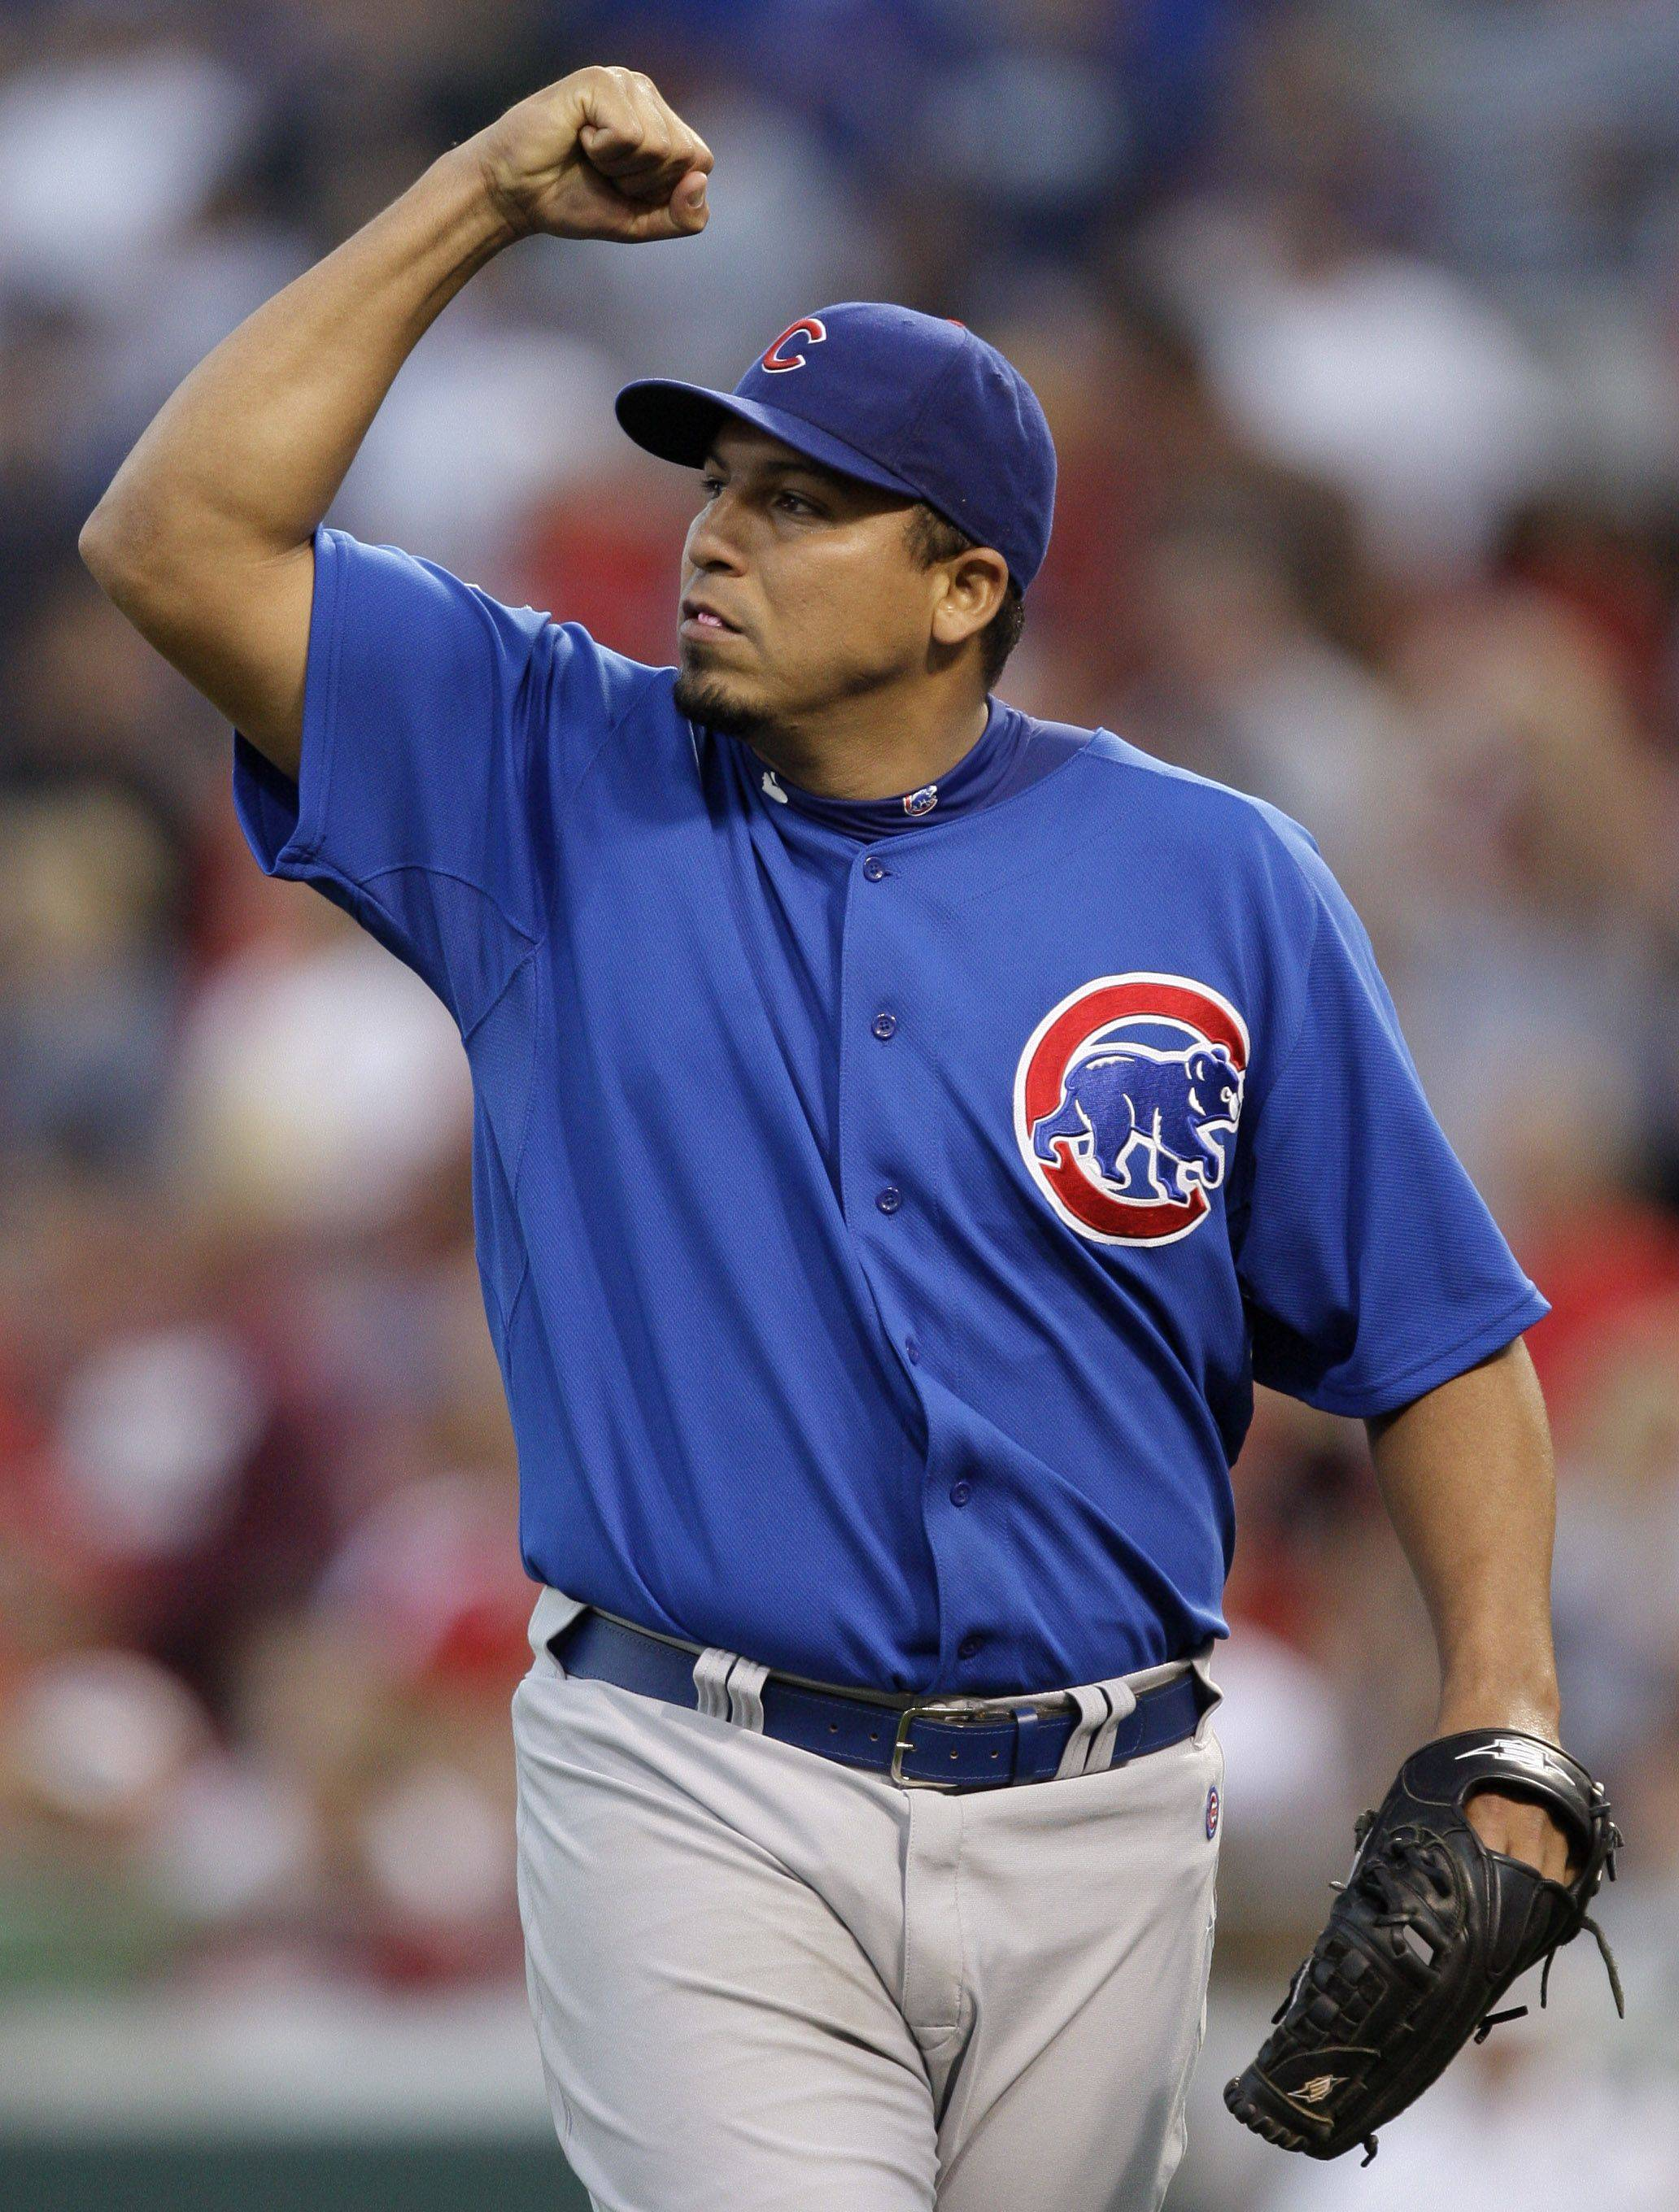 Now that the Yankees have lost out on pitcher Cliff Lee, would Yankees manager Joe Girardi and pitching coach Larry Rothschild have any interest in Carlos Zambrano? The volatile Cubs pitcher, who closed out the season strong after a rough start, has a no-trade clause in his contract.